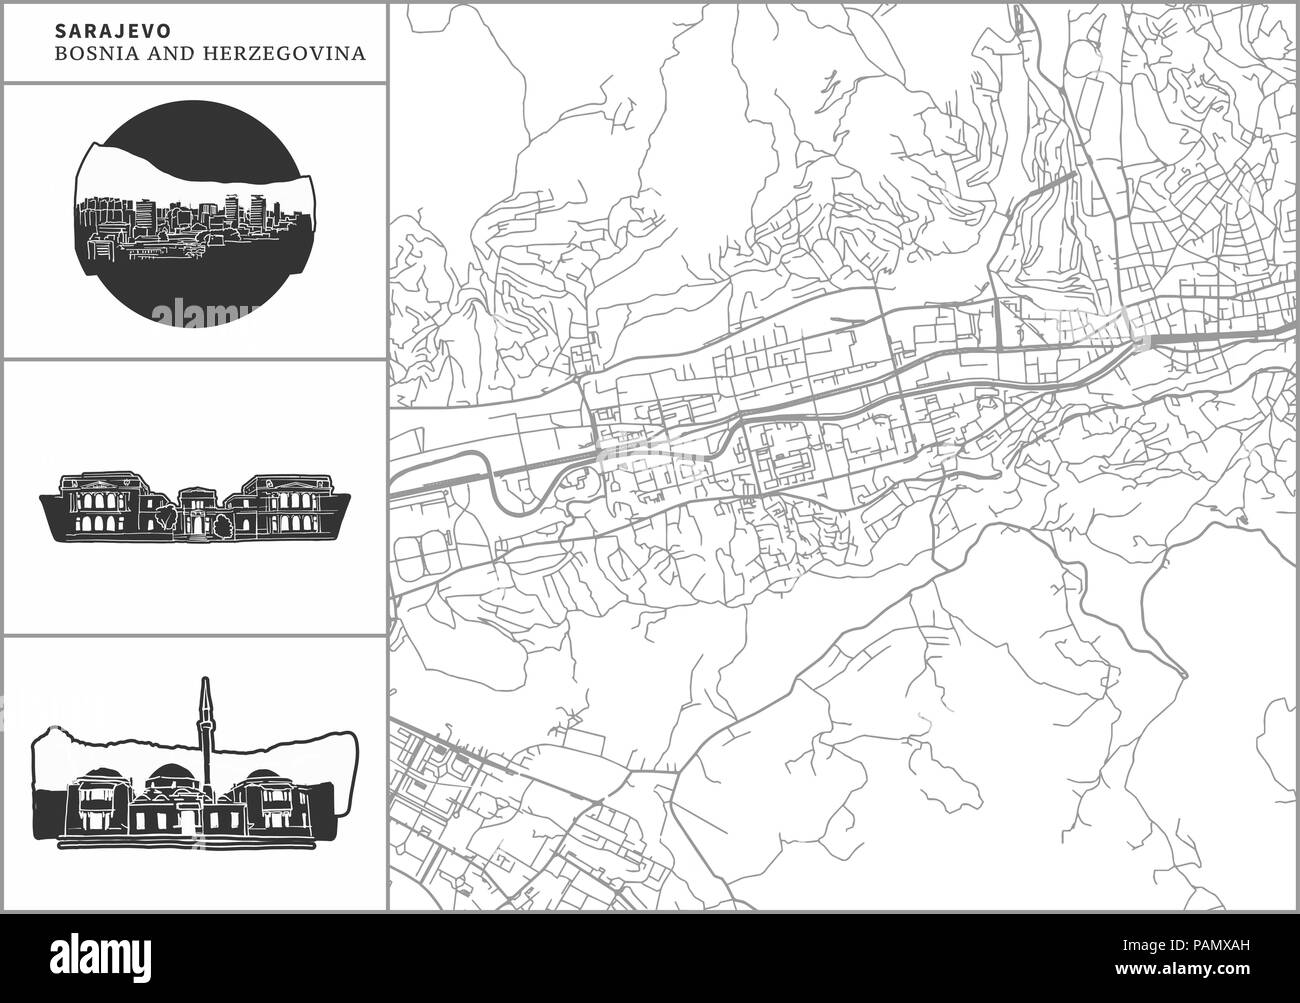 Sarajevo city map with hand-drawn architecture icons. All drawigns, map and background separated for easy color change. Easy repositioning in vector v - Stock Vector